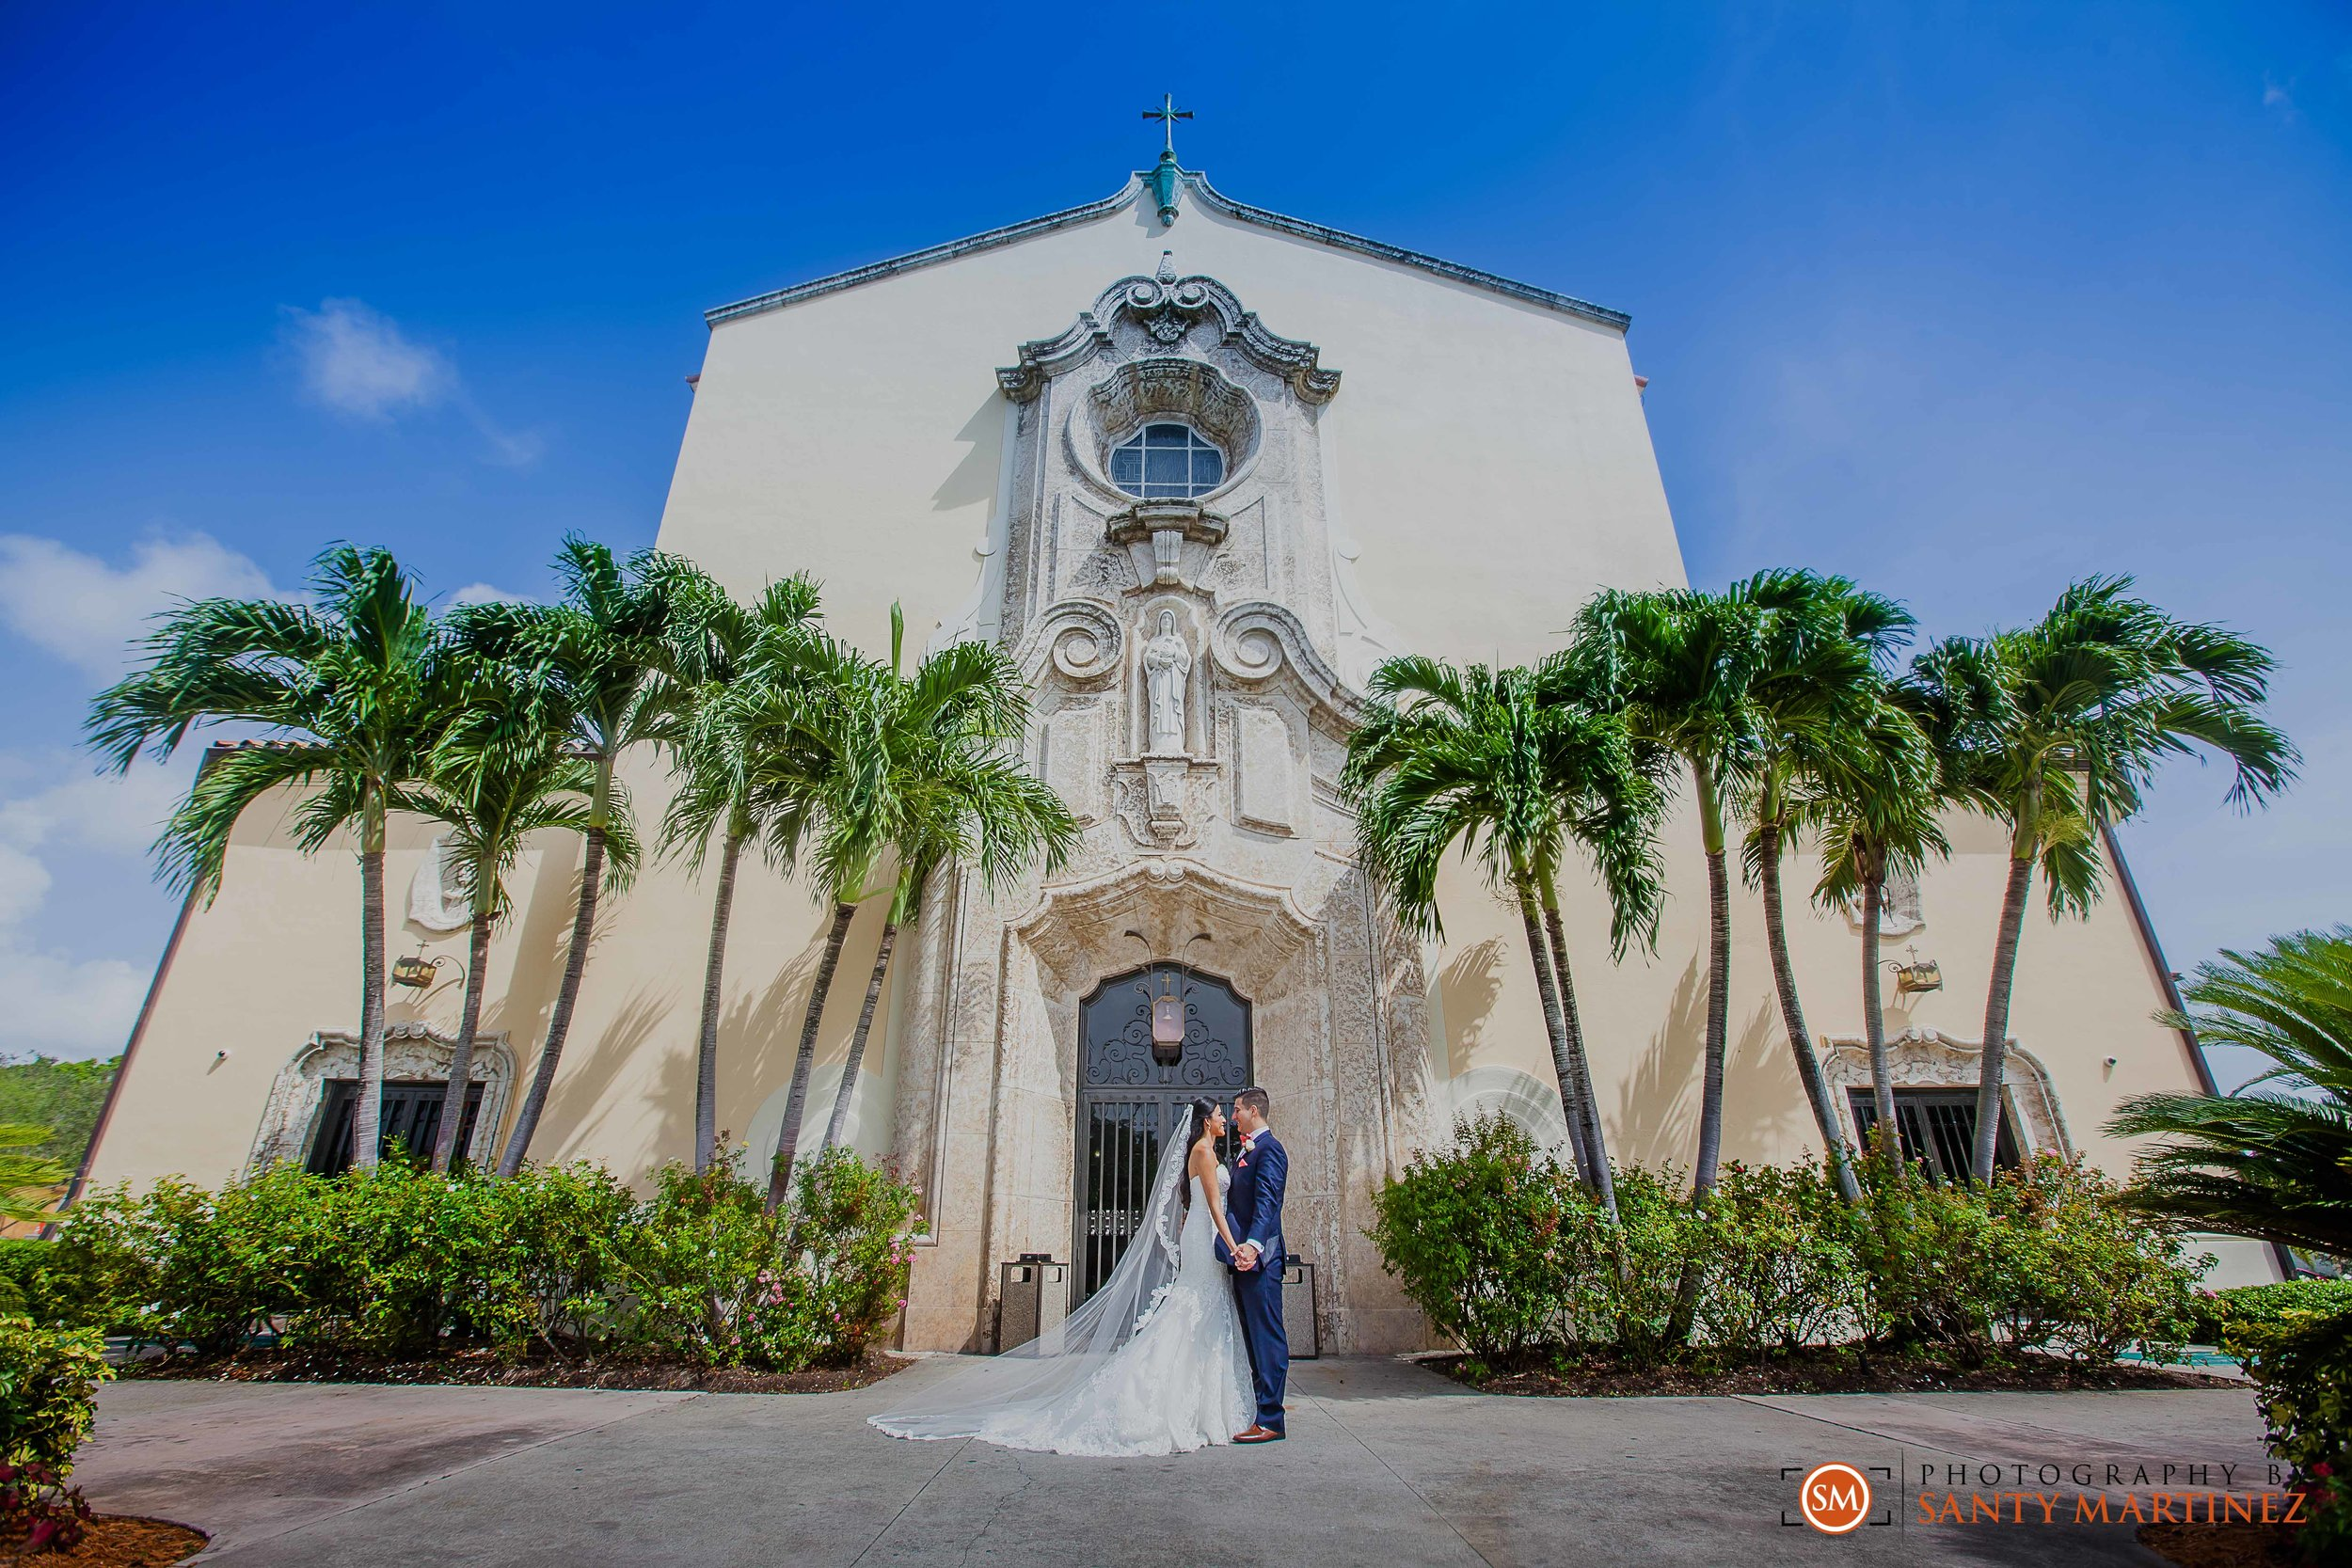 Wedding - Biltmore Hotel - Vista Lago Ballroom - Photography by Santy Martinez-31.jpg